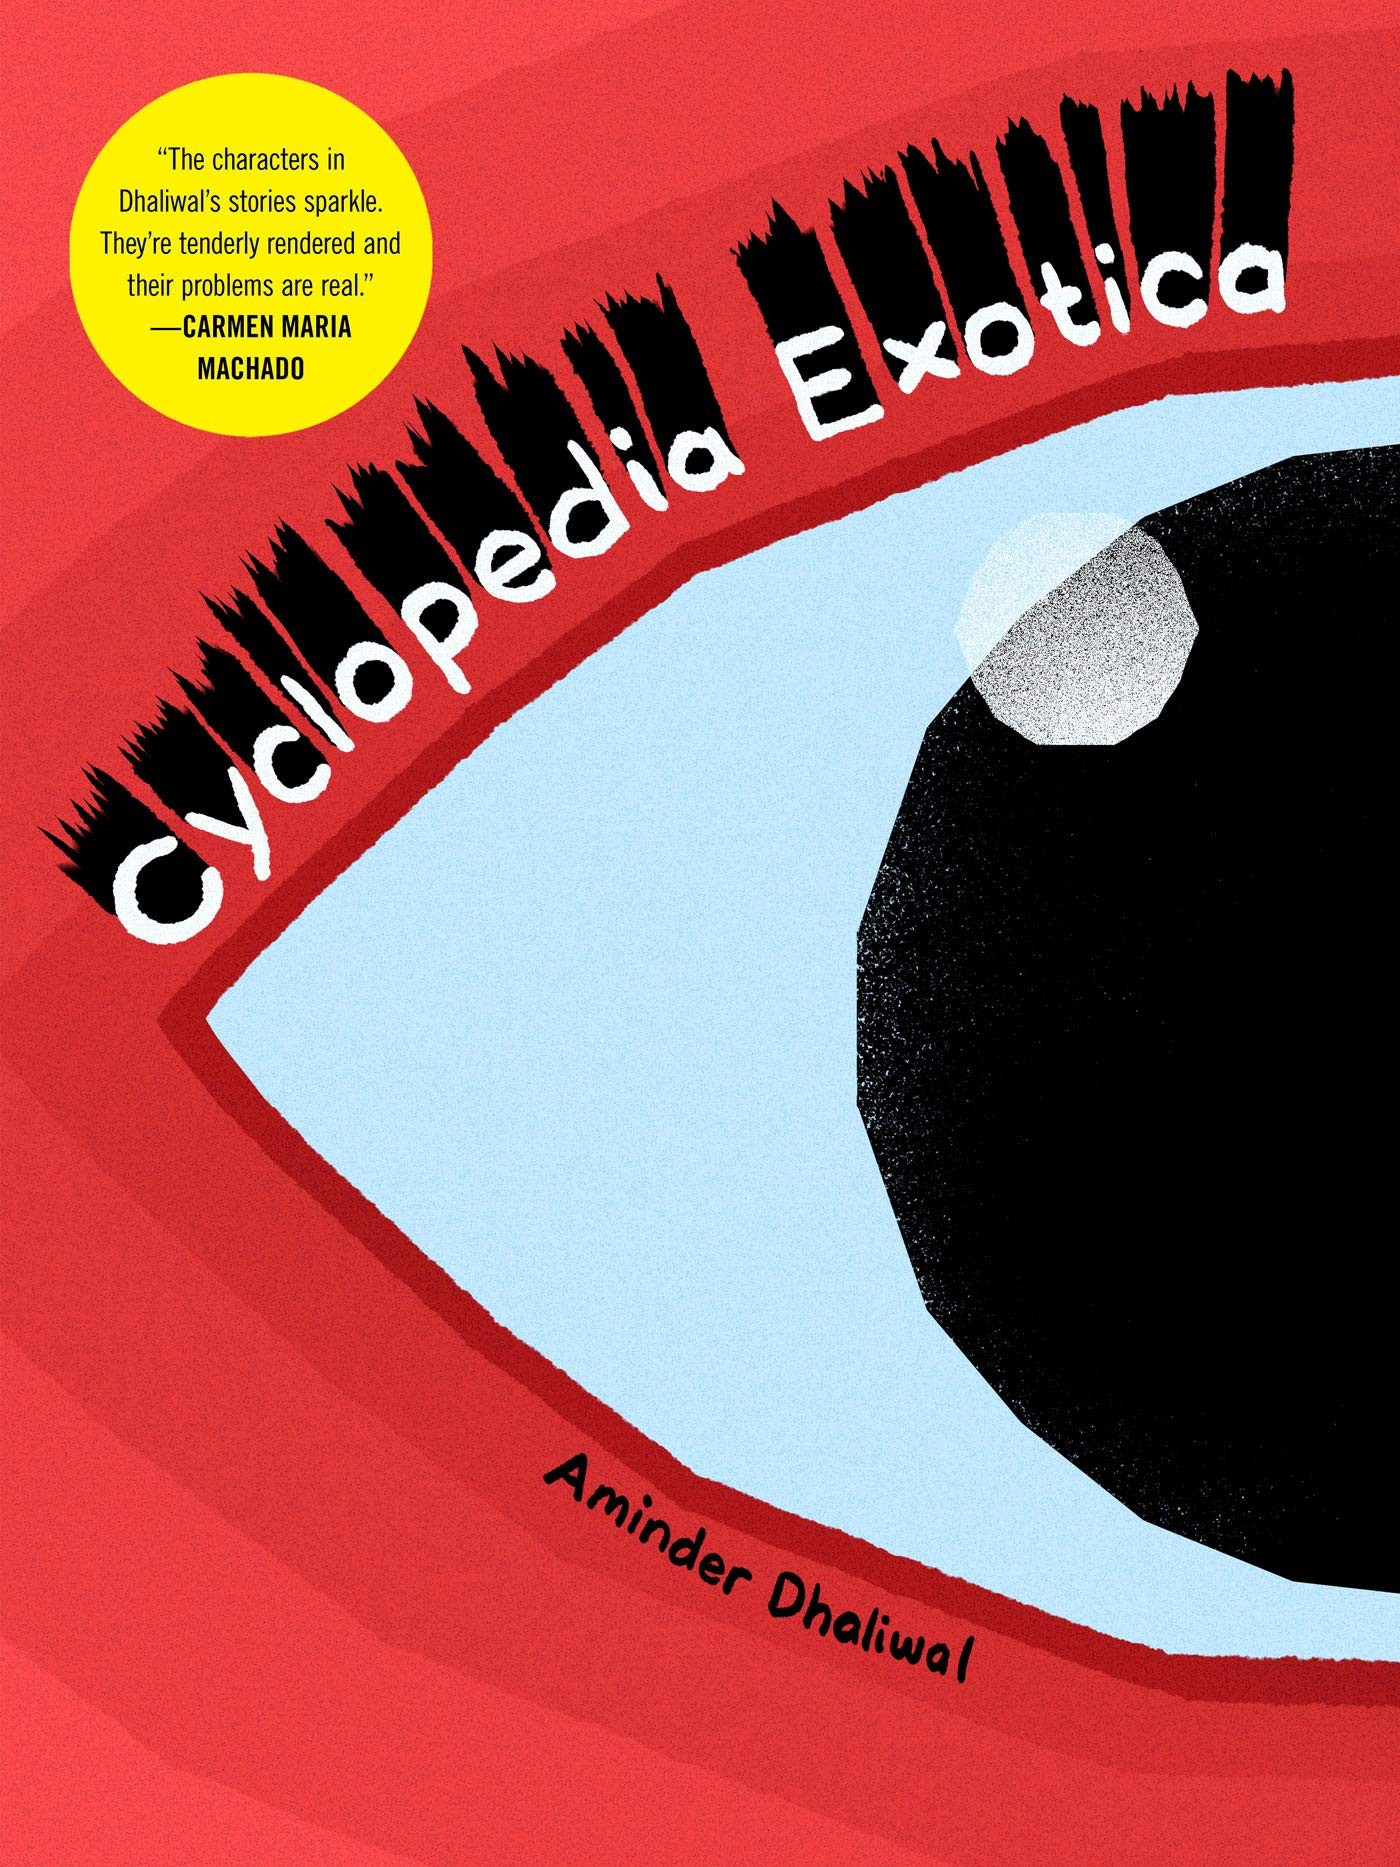 The cover of Cylcopedia Exotica by Aminder Dhaliwal, featuring a large single eye on a red background.